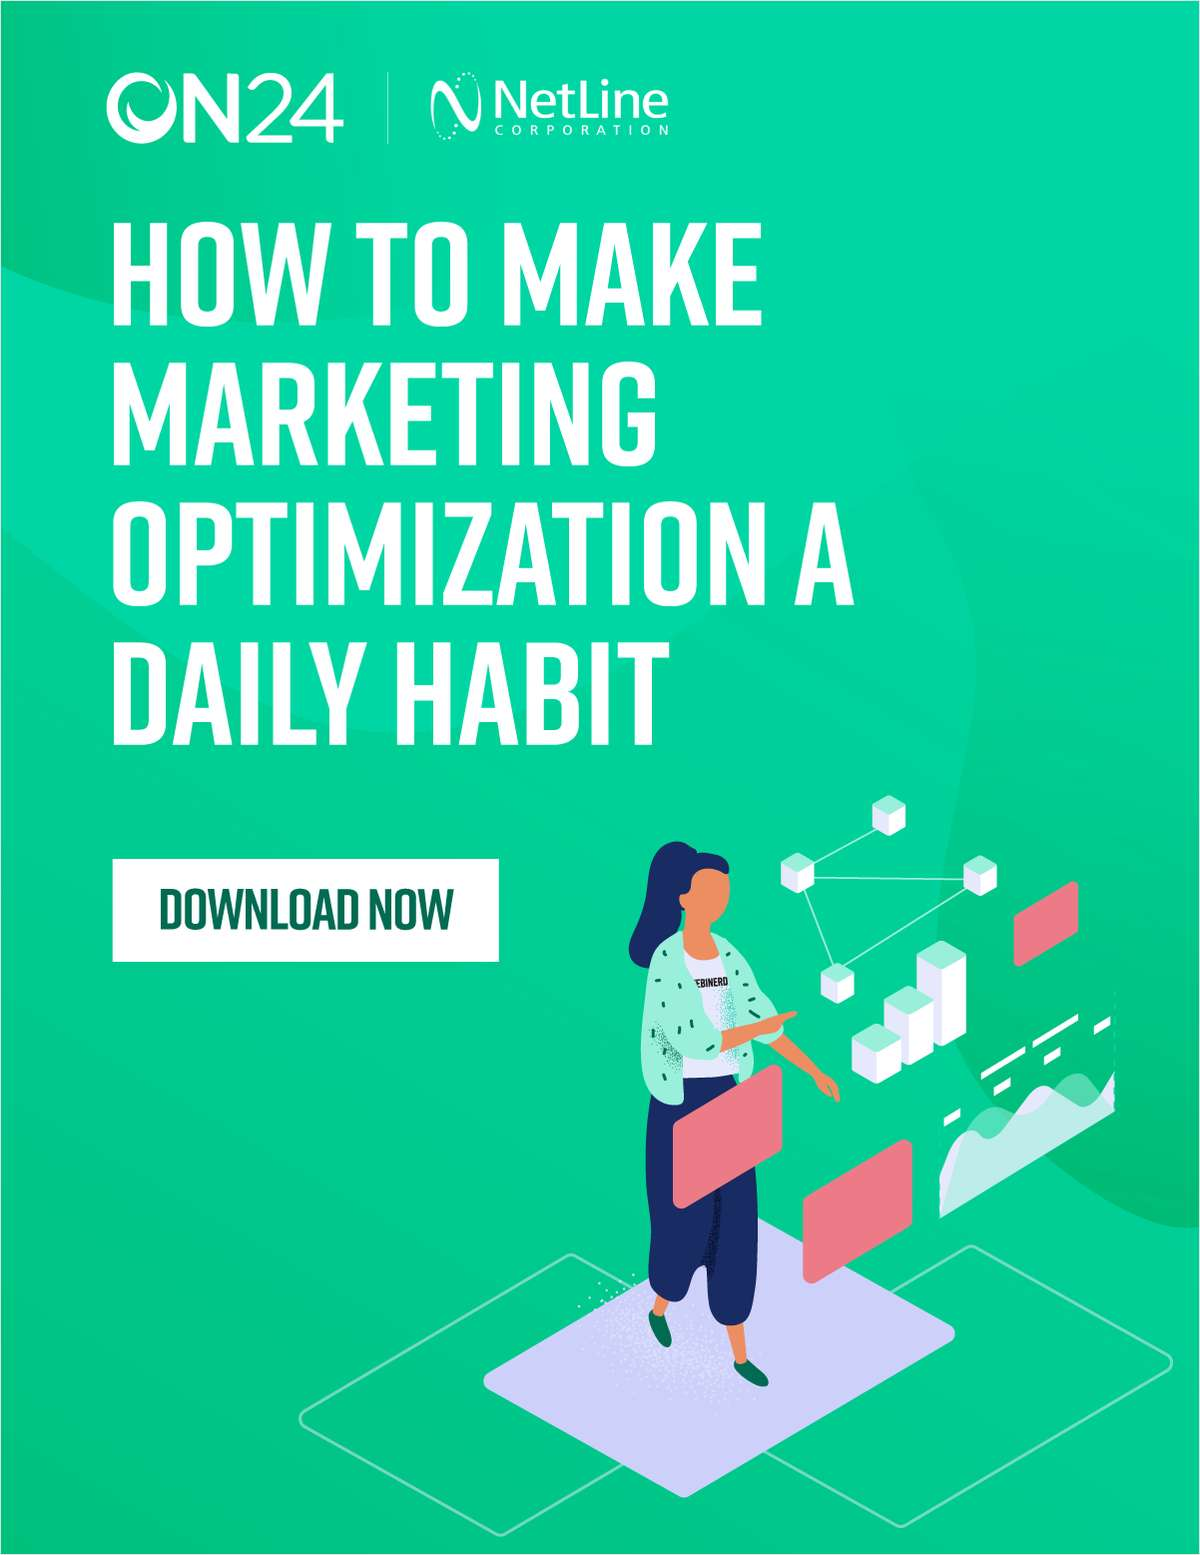 How to Make Marketing Optimization a Daily Habit